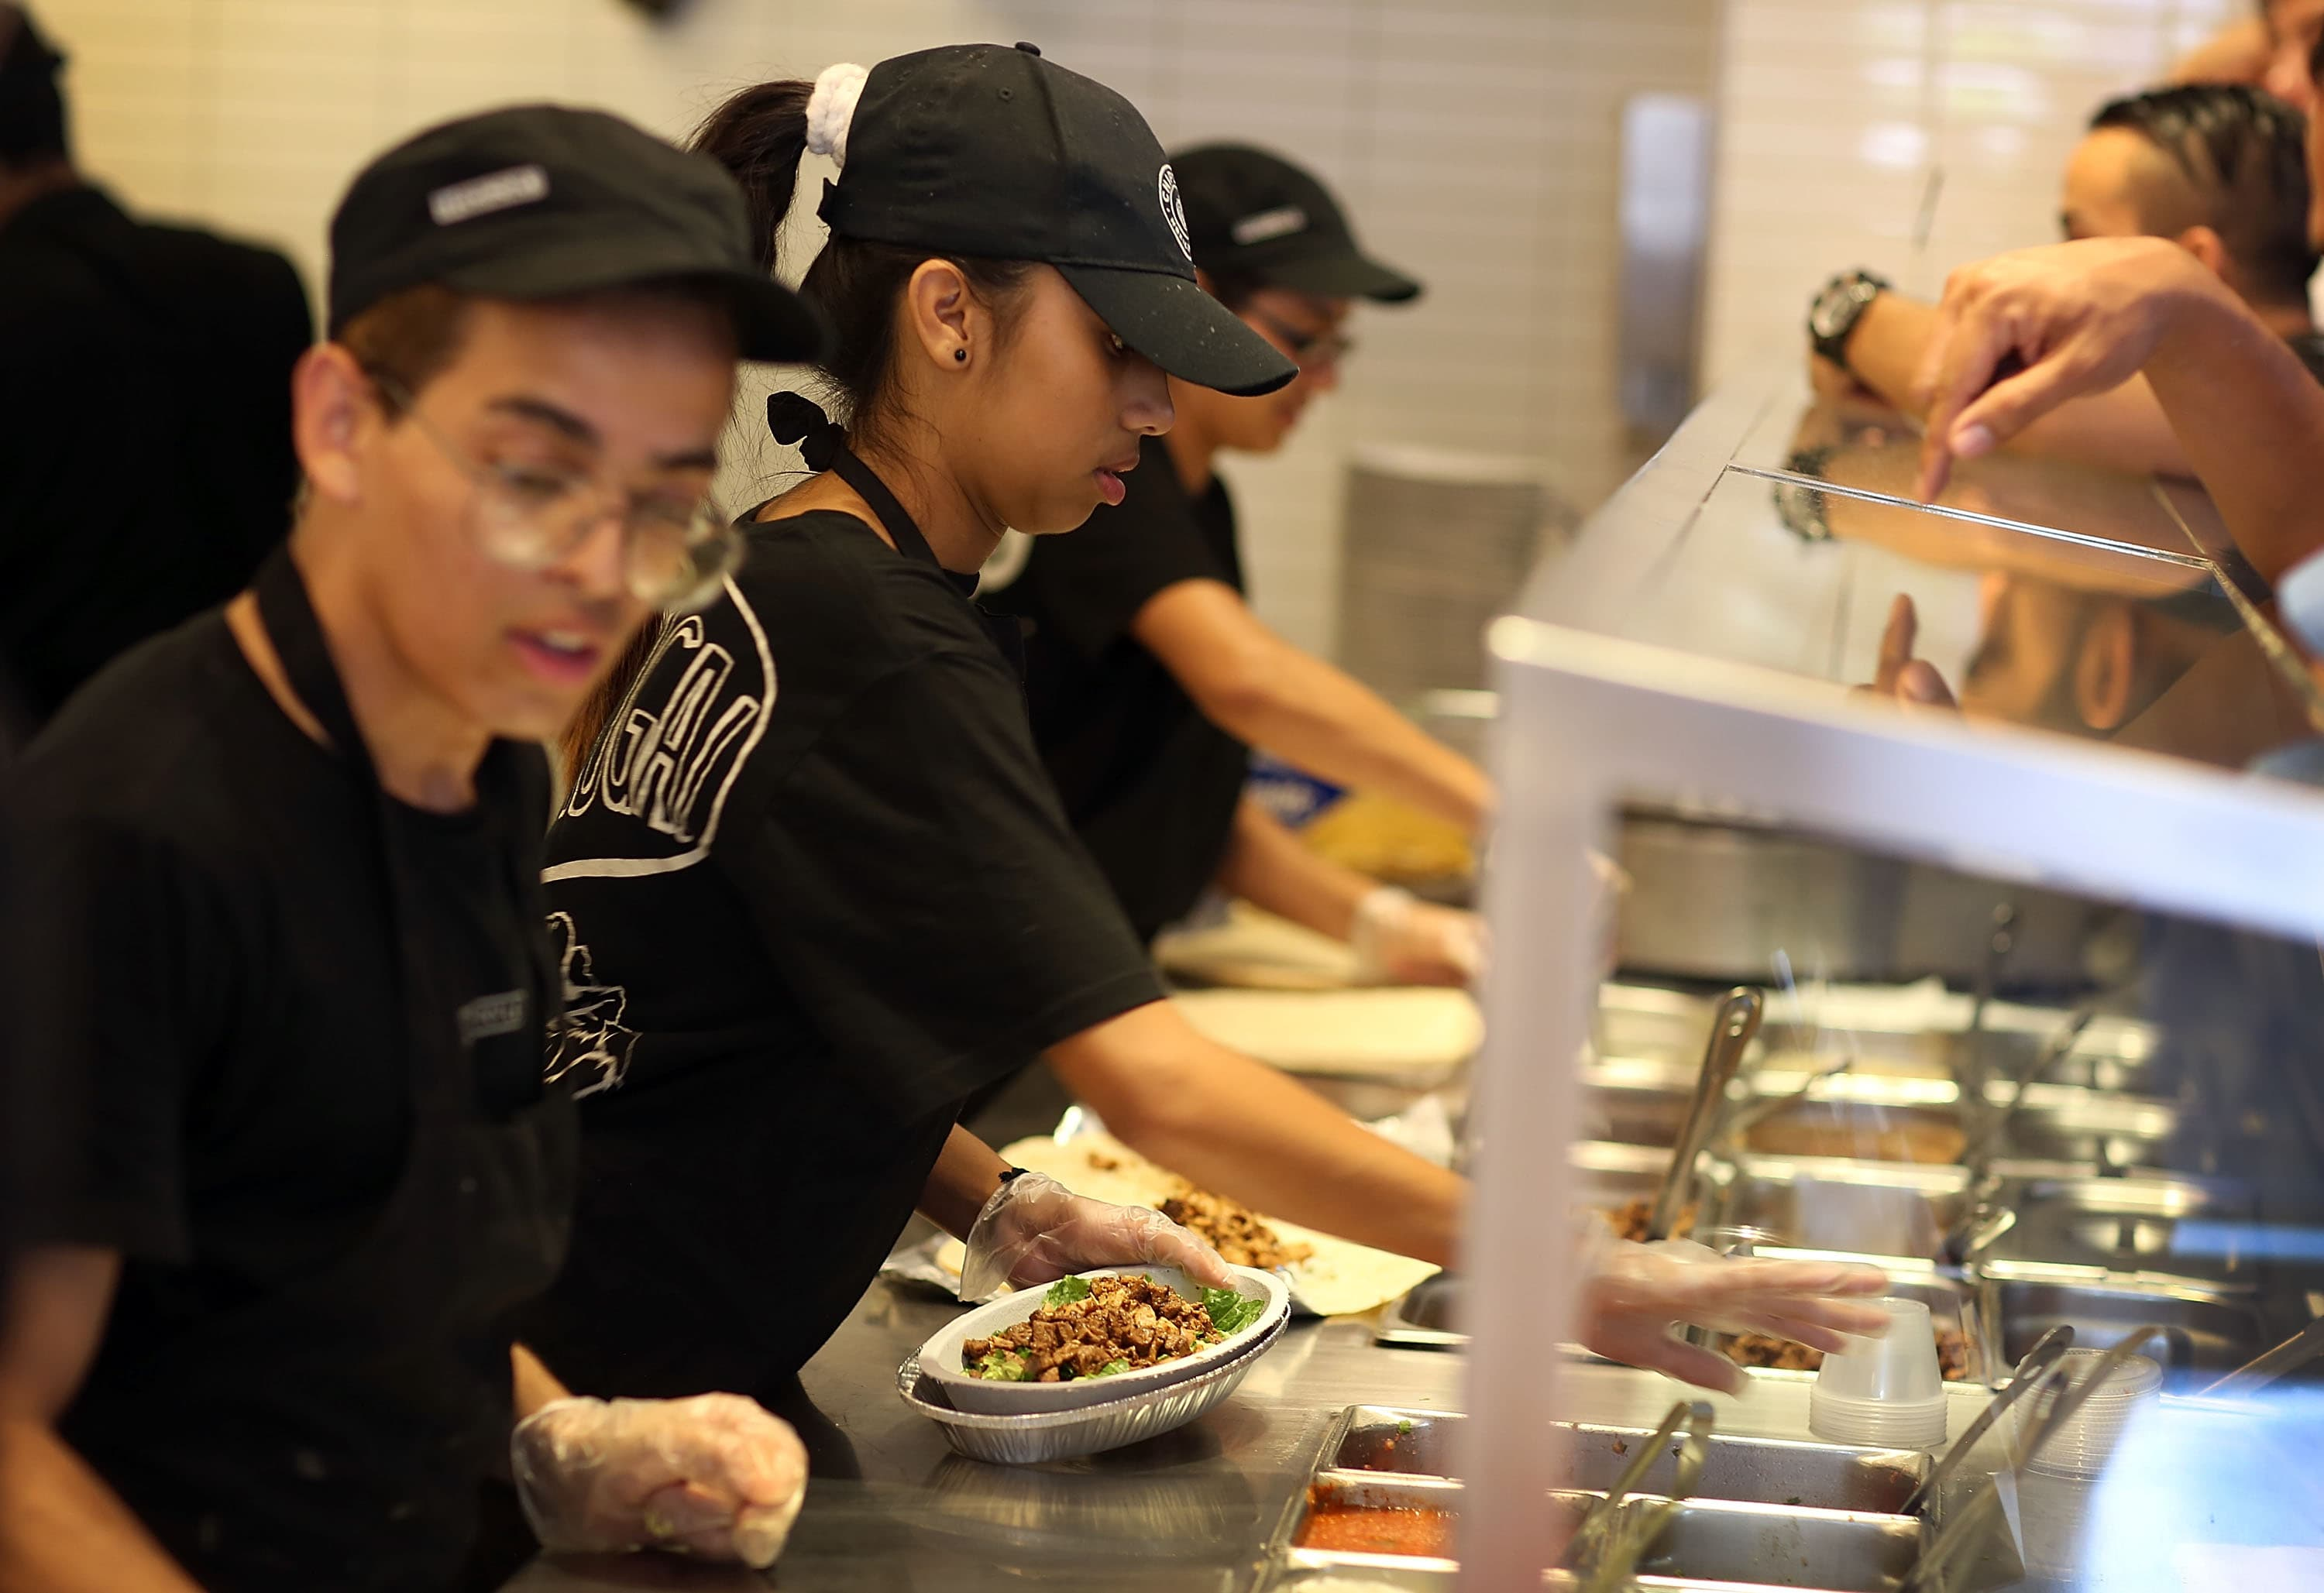 Chipotle to offer tuition reimbursement to hourly workers